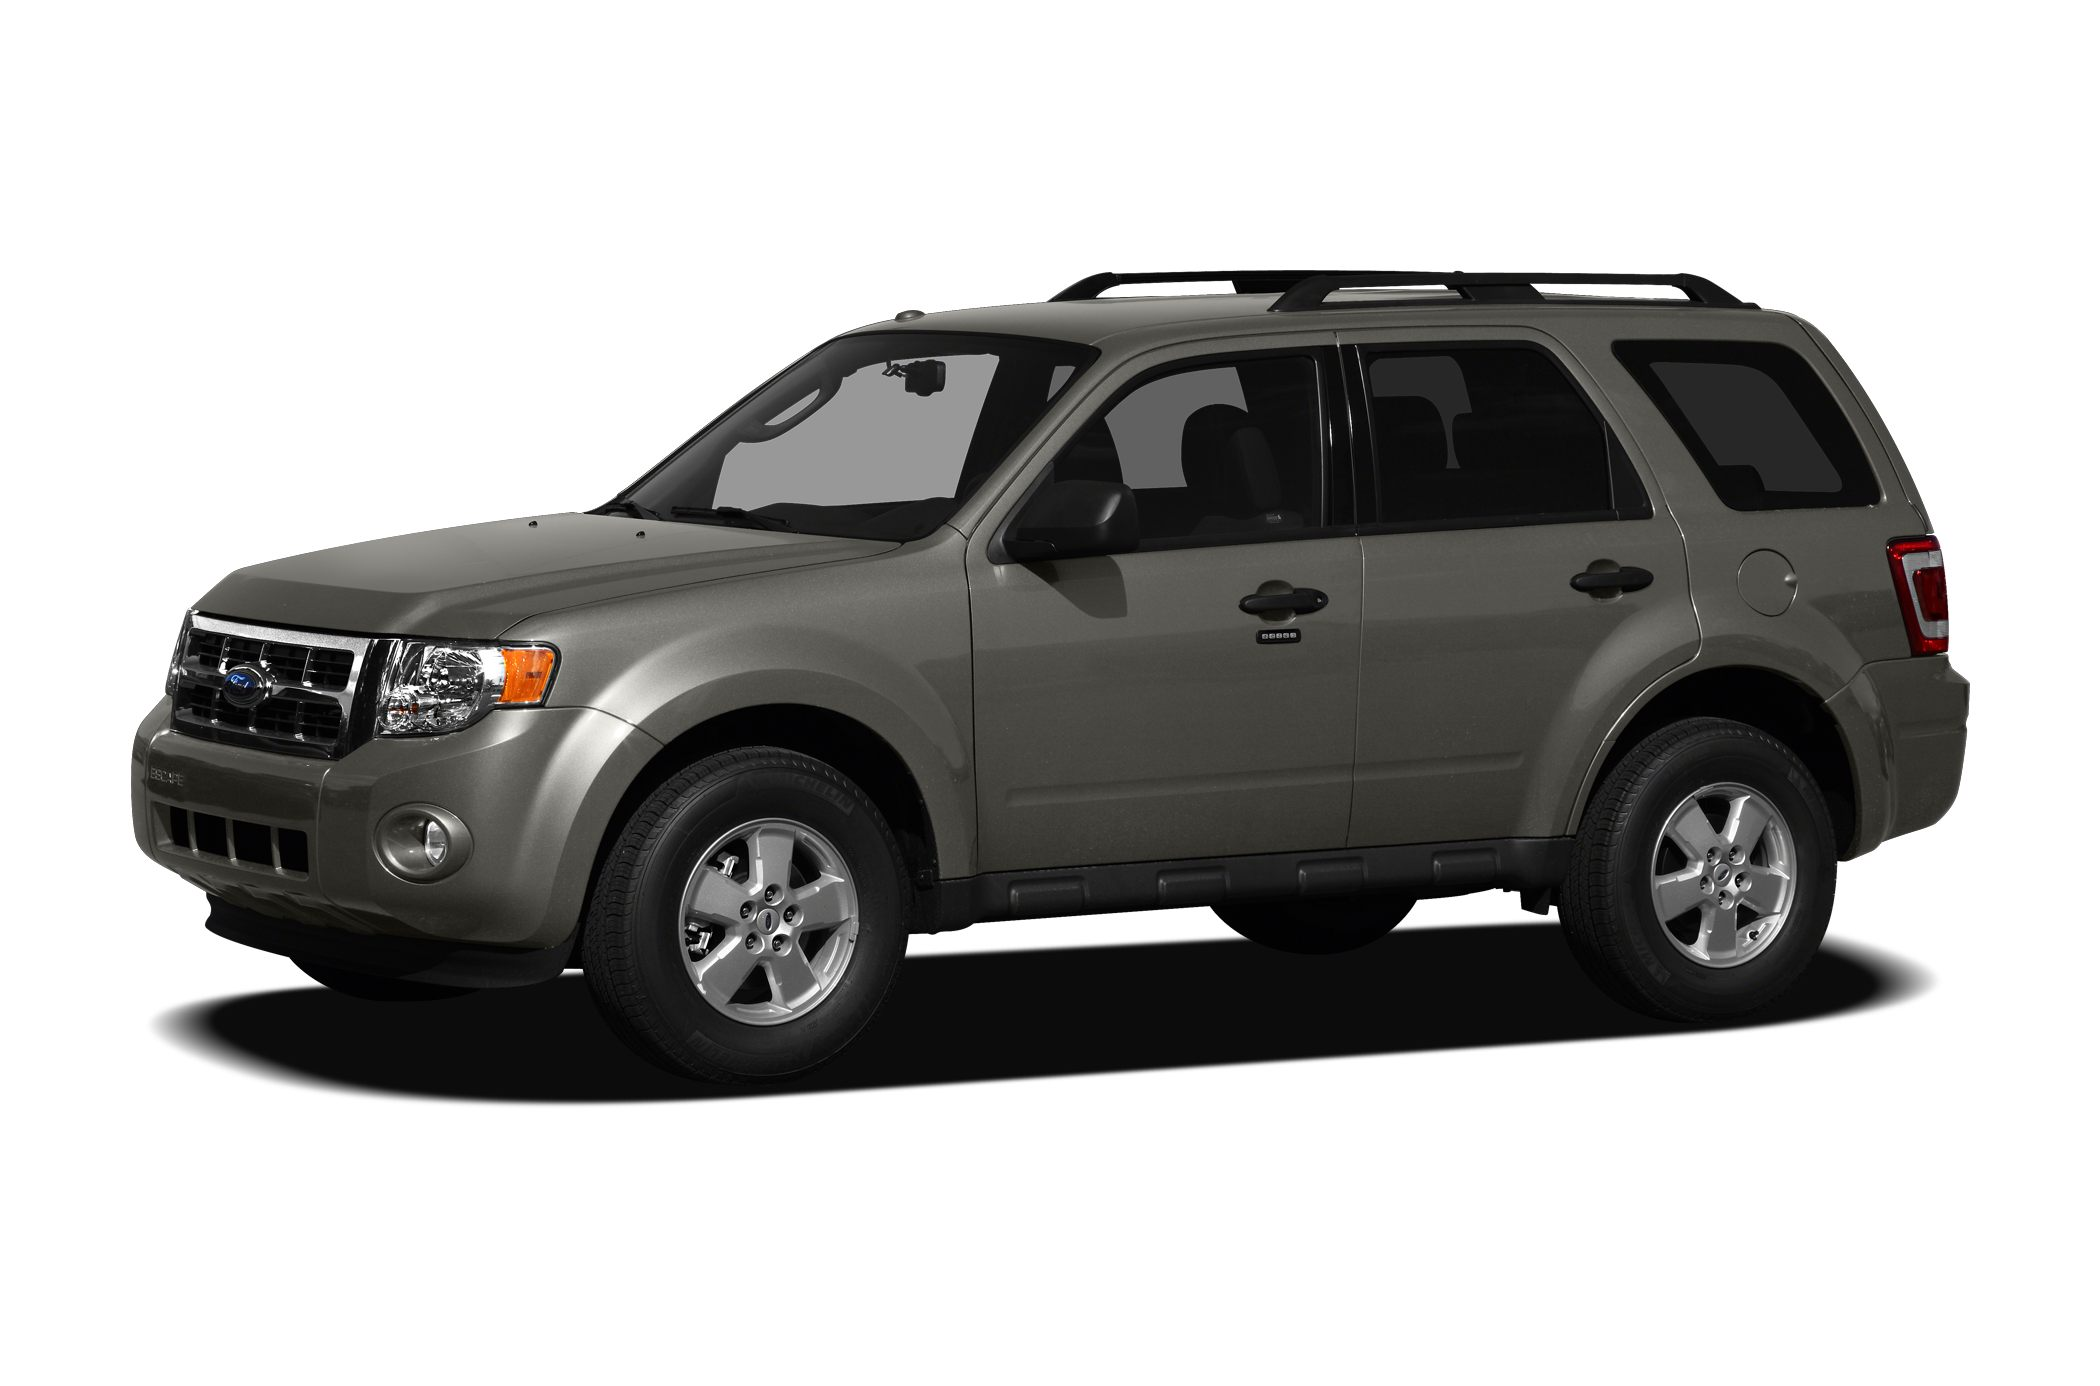 2012 Ford Escape XLT XLT trim CARFAX 1-Owner GREAT MILES 30258 FUEL EFFICIENT 27 MPG Hwy20 MP